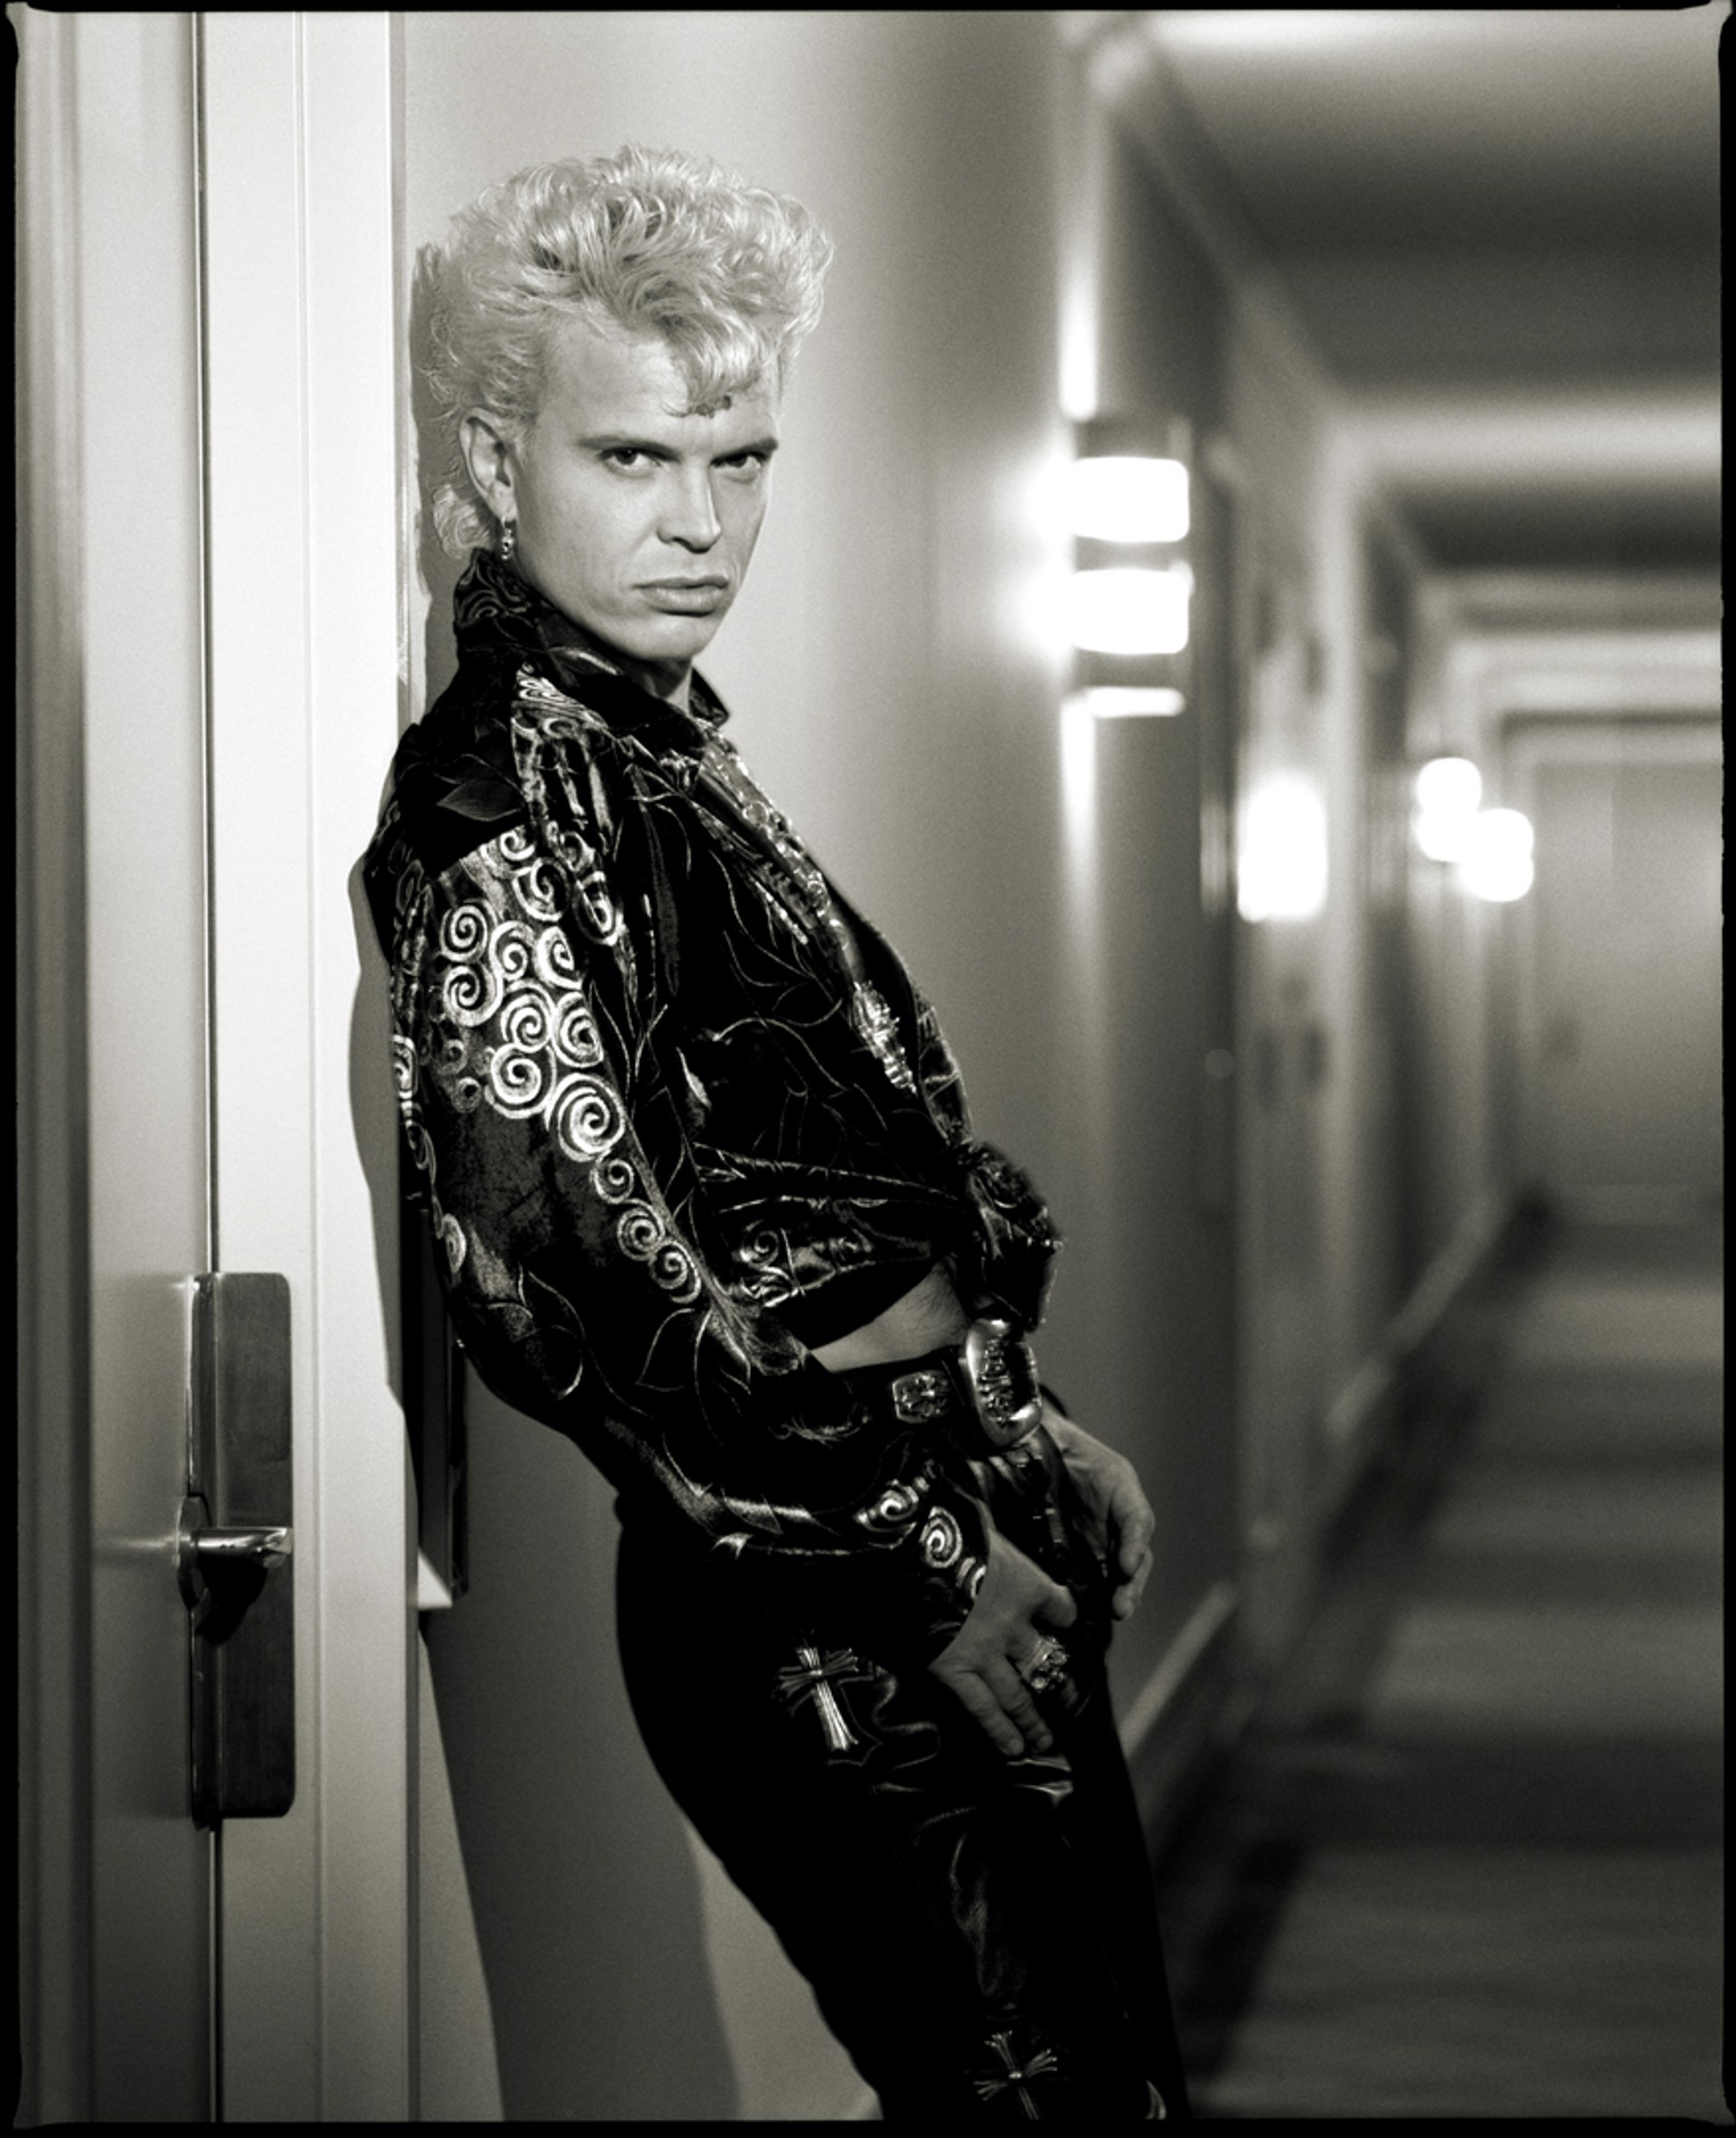 90109 Billy Idol 3 BW by Timothy White